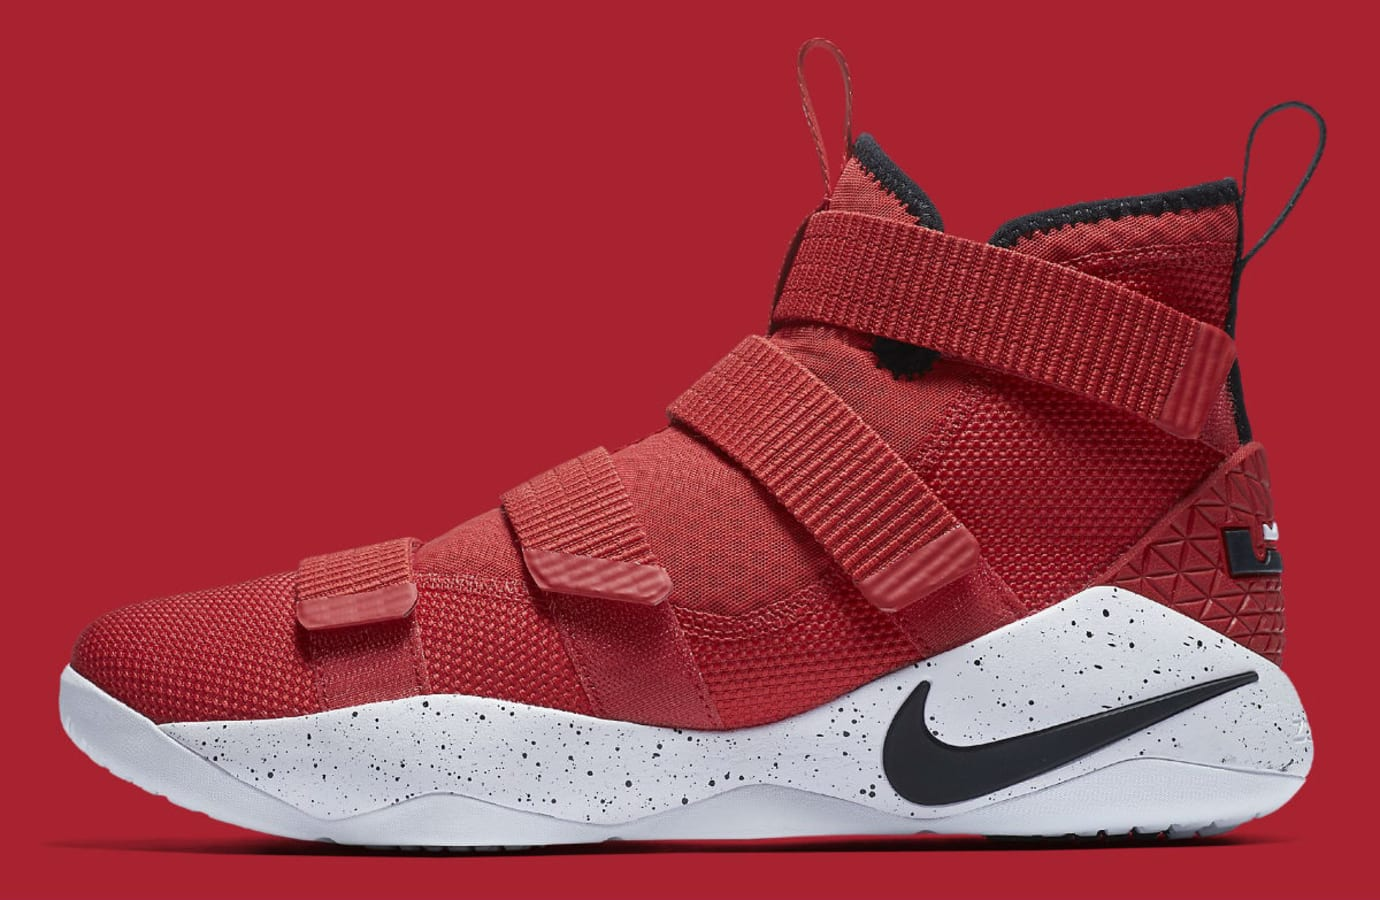 cf36a6ac9d70 Nike LeBron Soldier 11 University Red Release Date Profile 897644-601